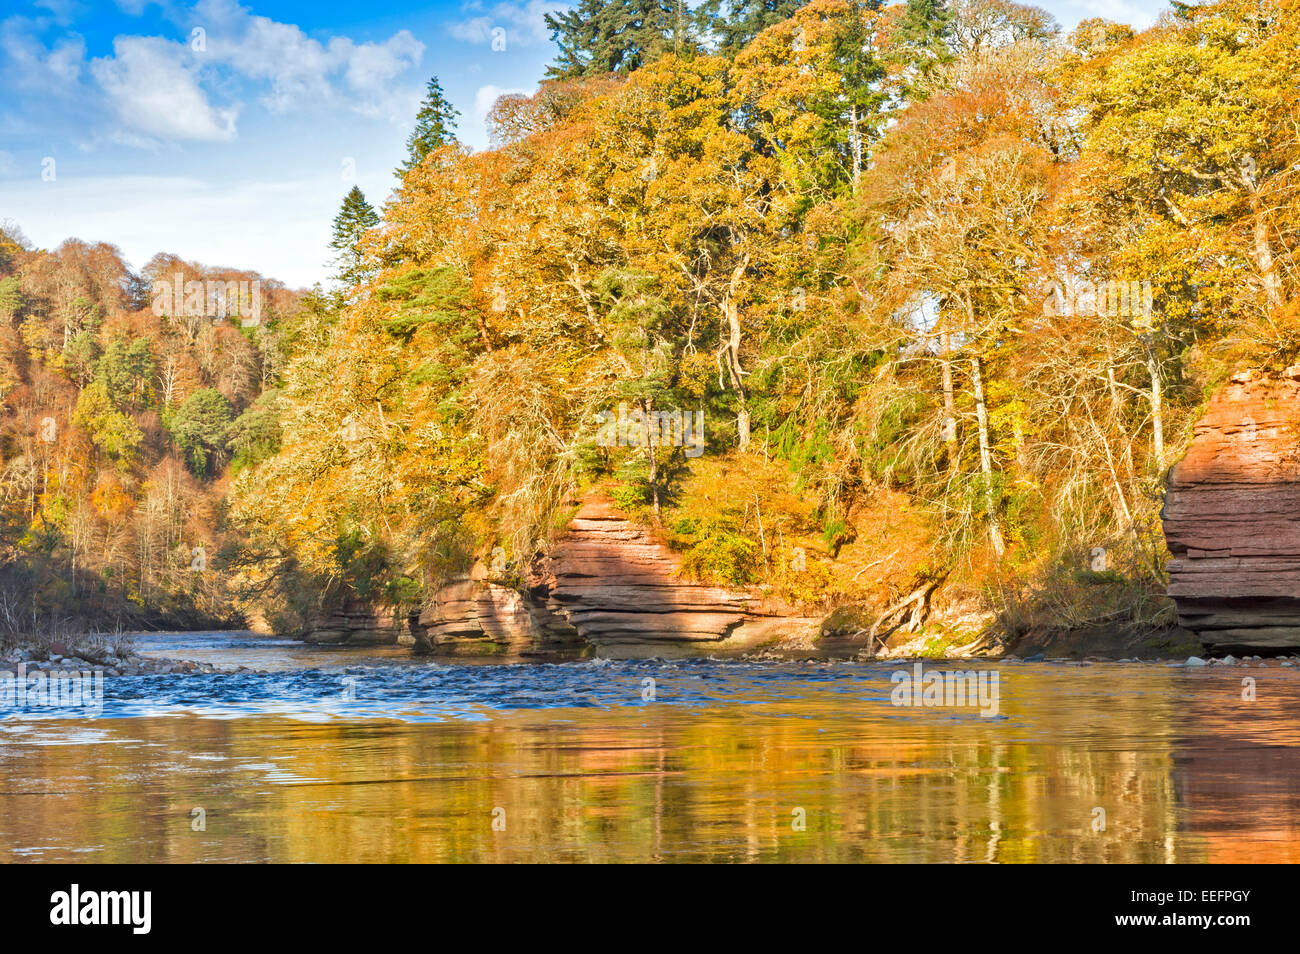 RIVER FINDHORN AND RED SANDSTONE CLIFFS AT DARNAWAY WITH AUTUMNAL TREES LEAVES AND WATER REFLECTIONS - Stock Image